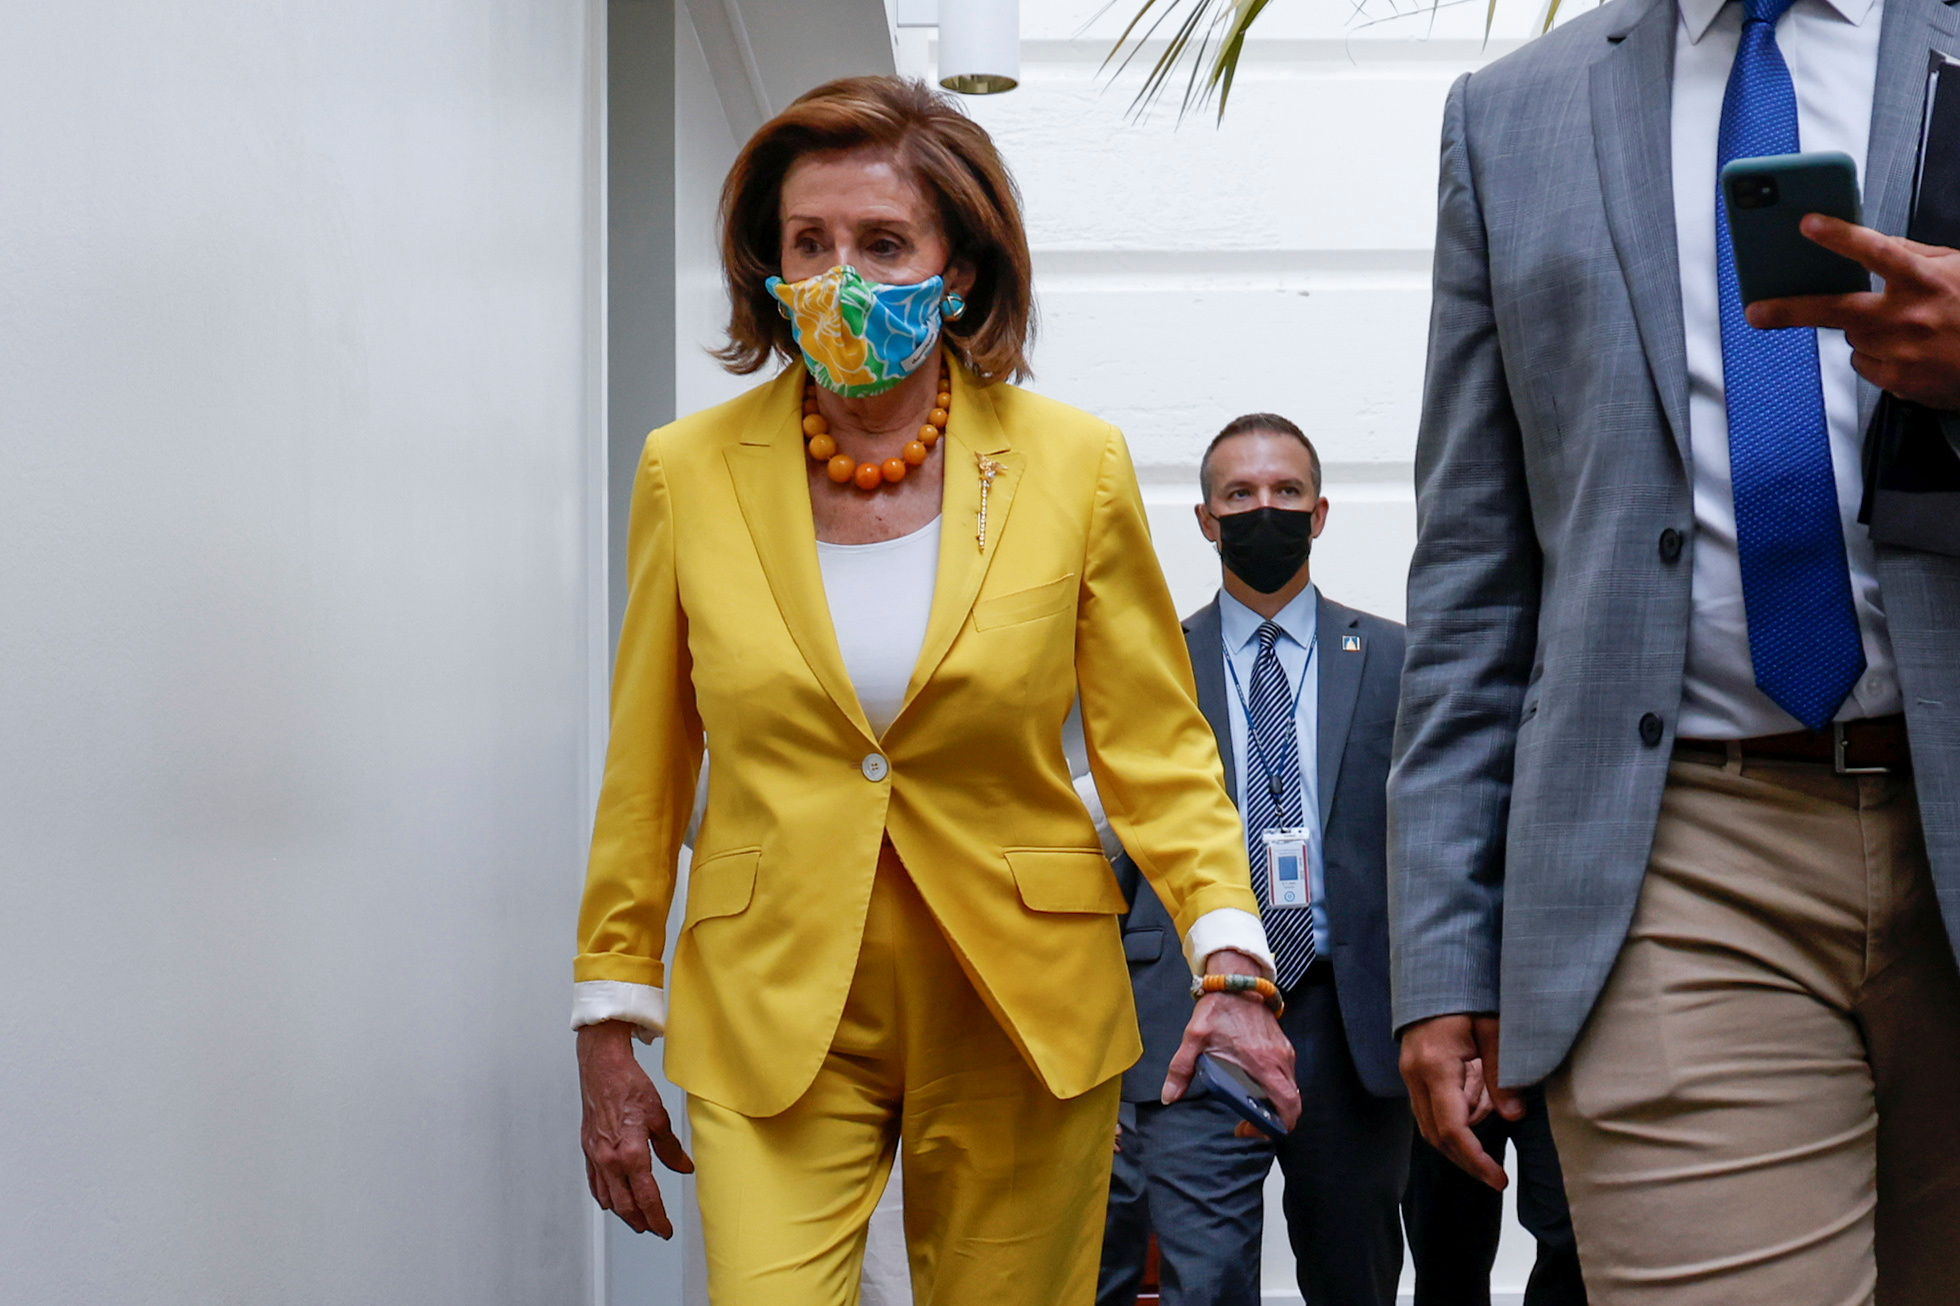 U.S. House Speaker Nancy Pelosi (D-CA) arrives for a House Democratic caucus meeting amidst ongoing negotiations over budget and infrastructure legislation at the U.S. Capitol in Washington, U.S. August 24, 2021.  REUTERS/Jonathan Ernst